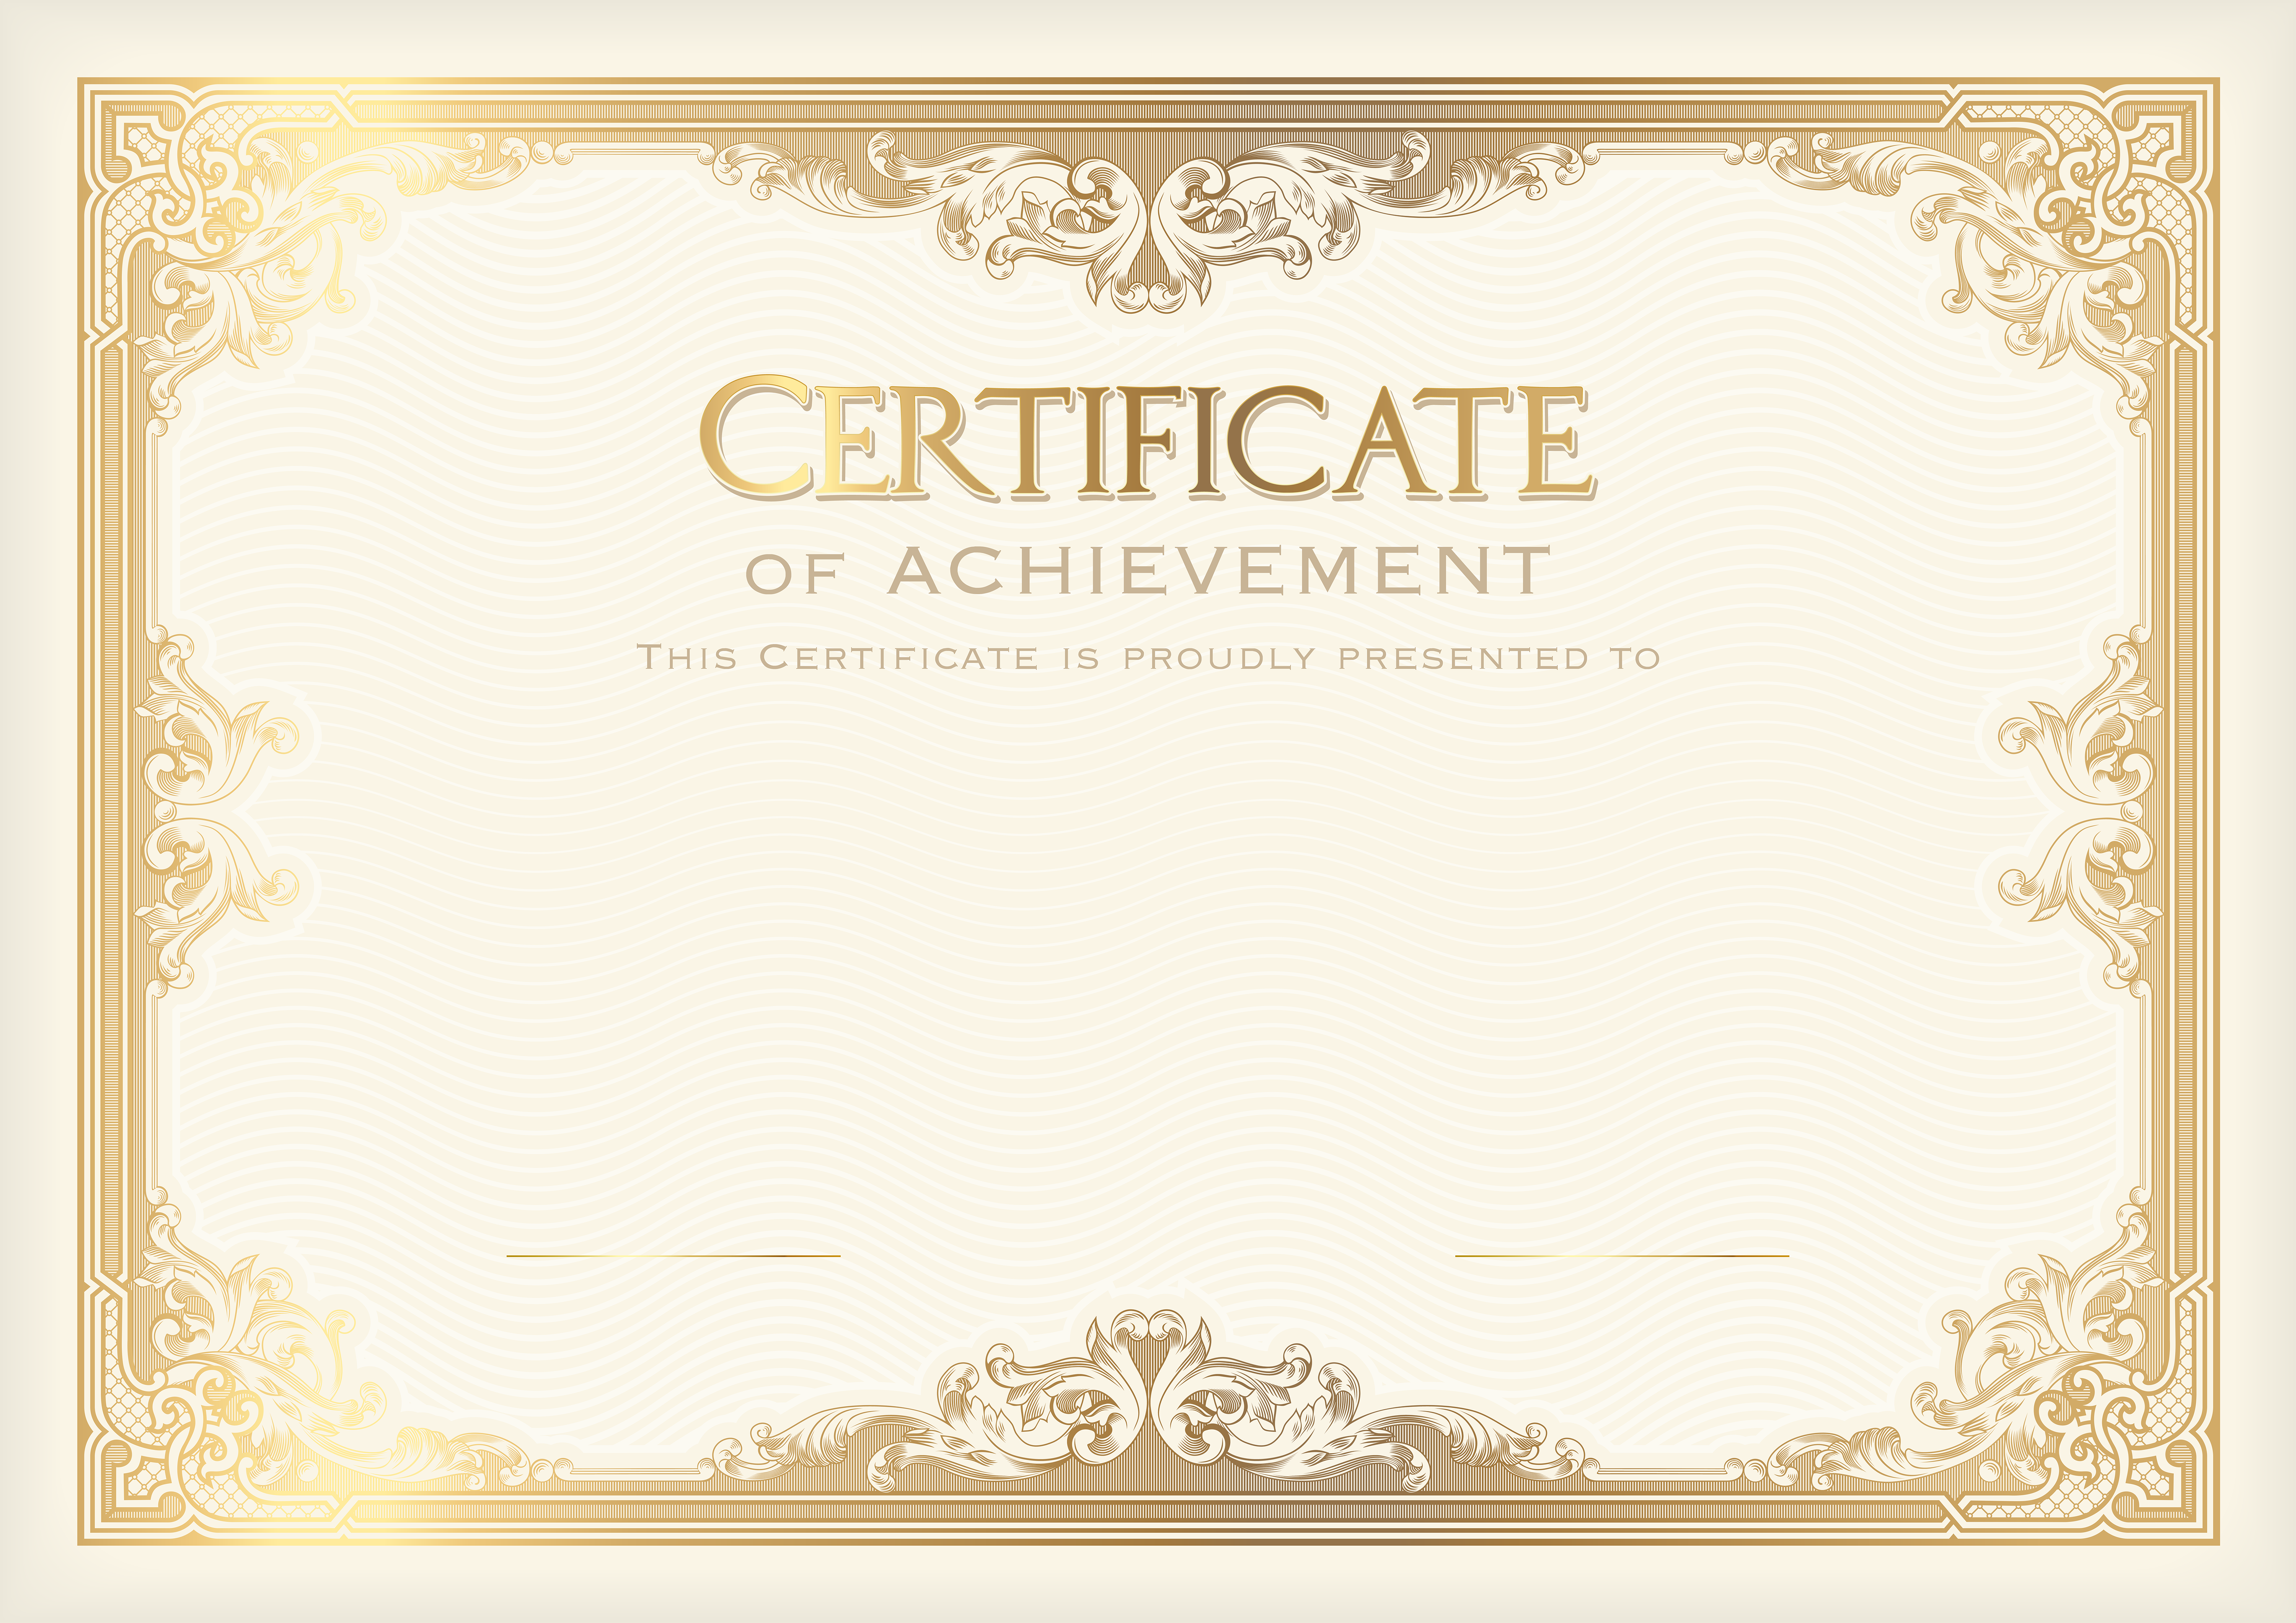 Certificate template png clip art image gallery yopriceville certificate template png clip art image gallery yopriceville high quality images and 1betcityfo Gallery